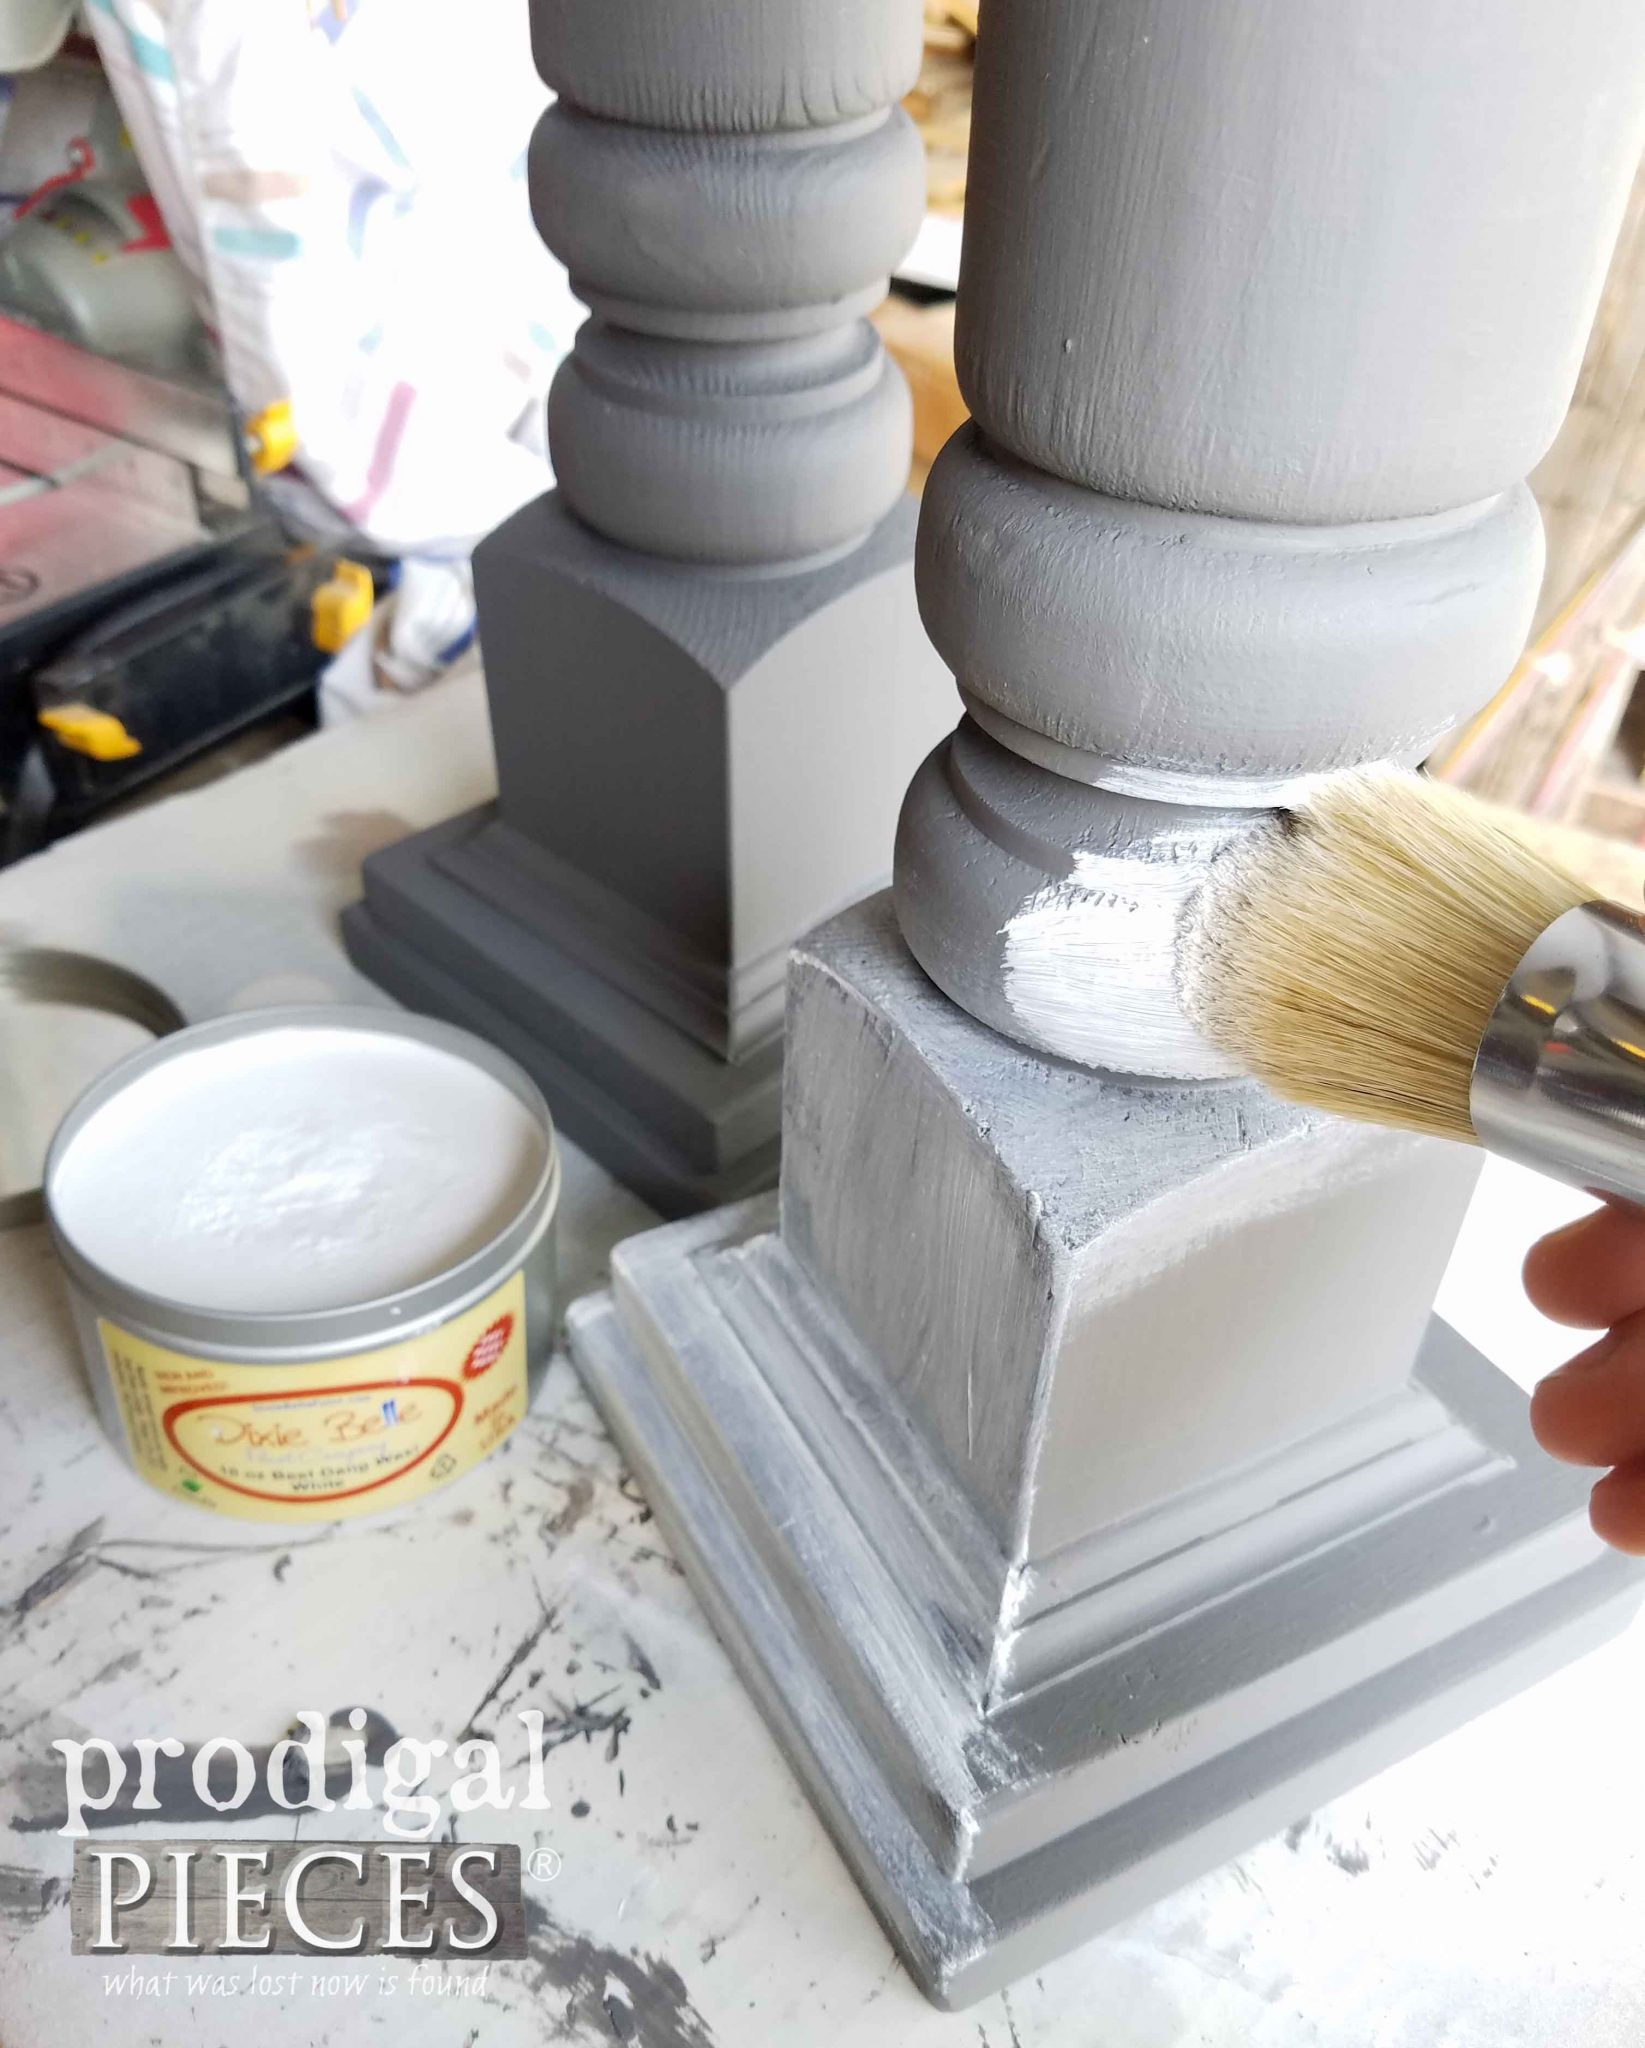 Waxing Candlesticks with White Wax by Prodigal Pieces | prodigalpieces.com